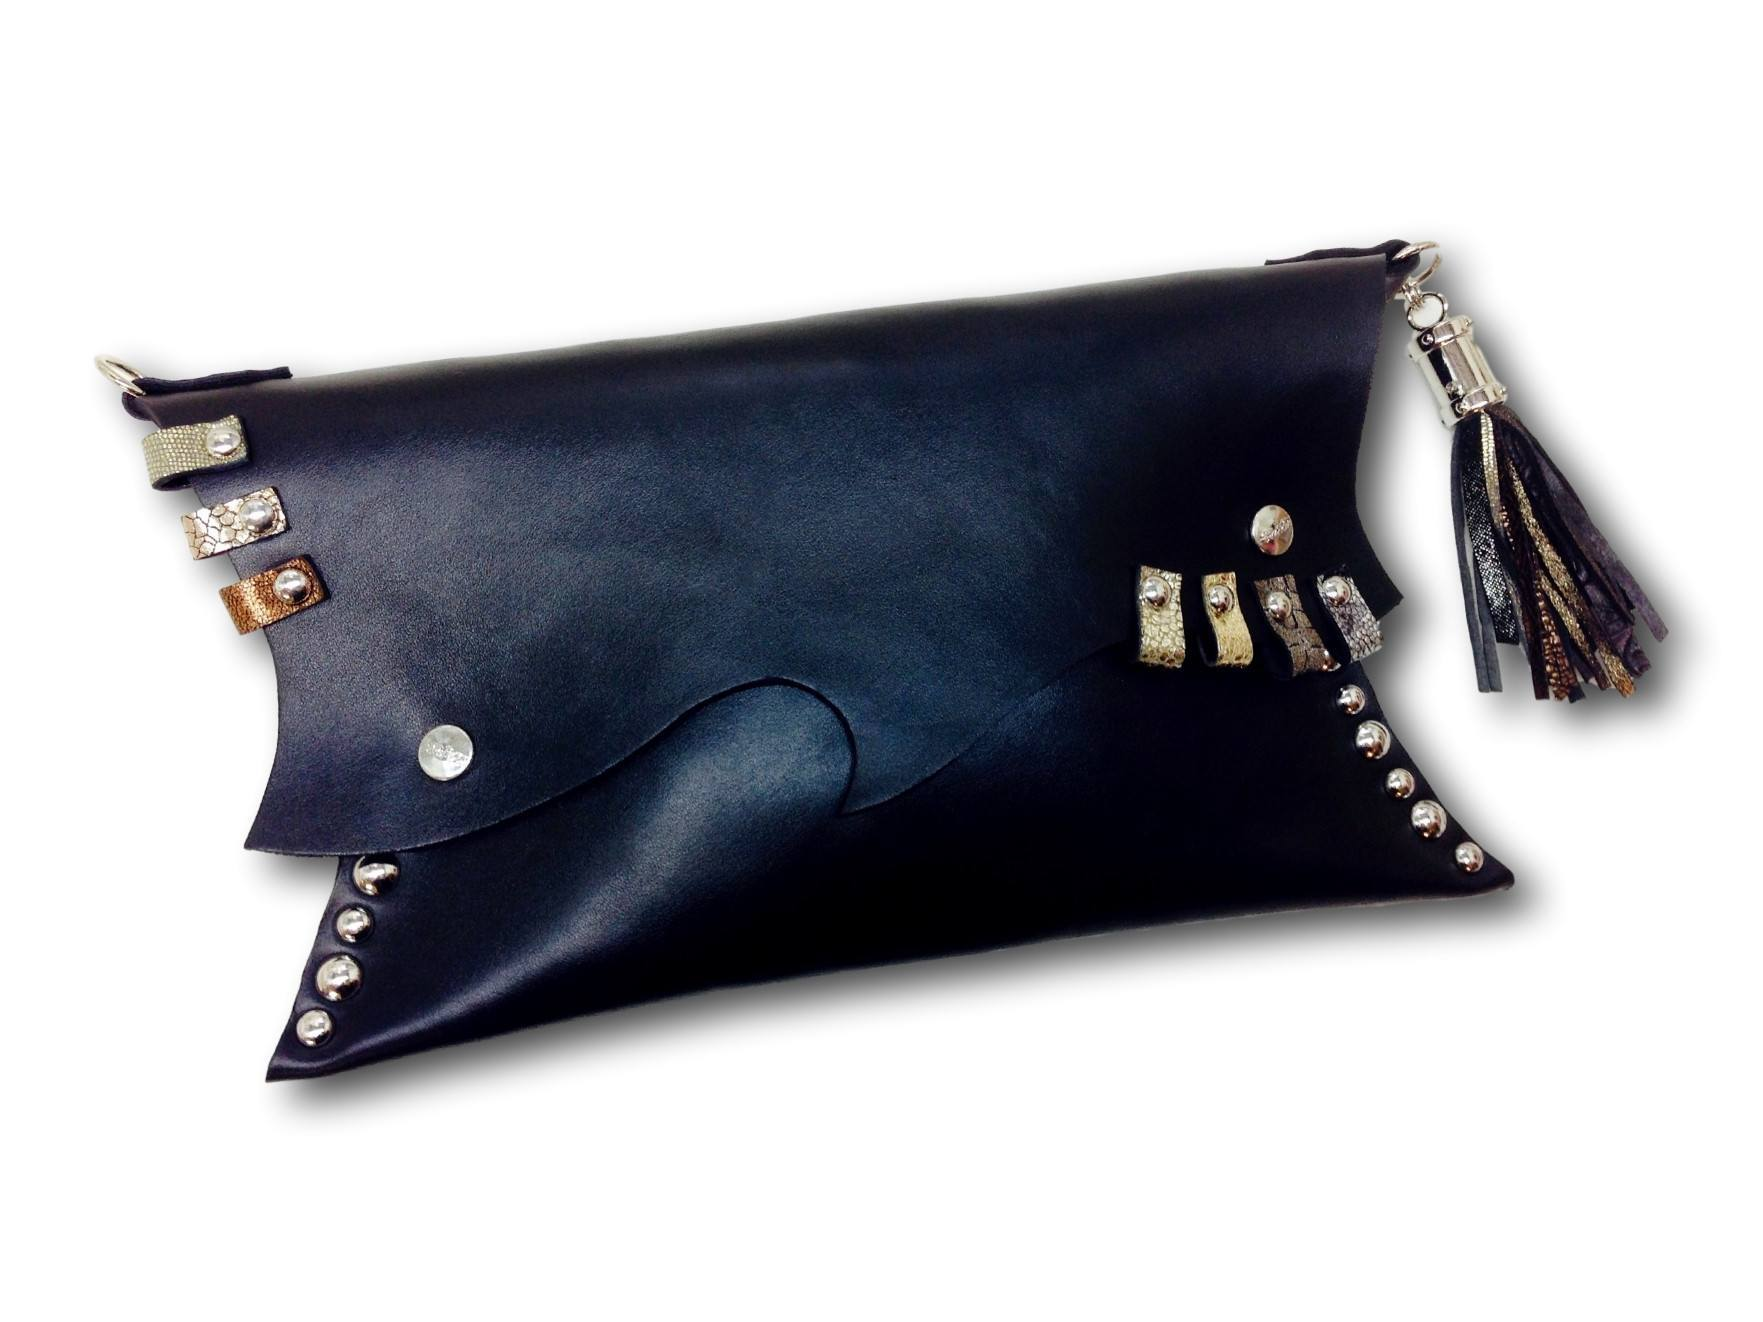 Handmade leather clutch (black)